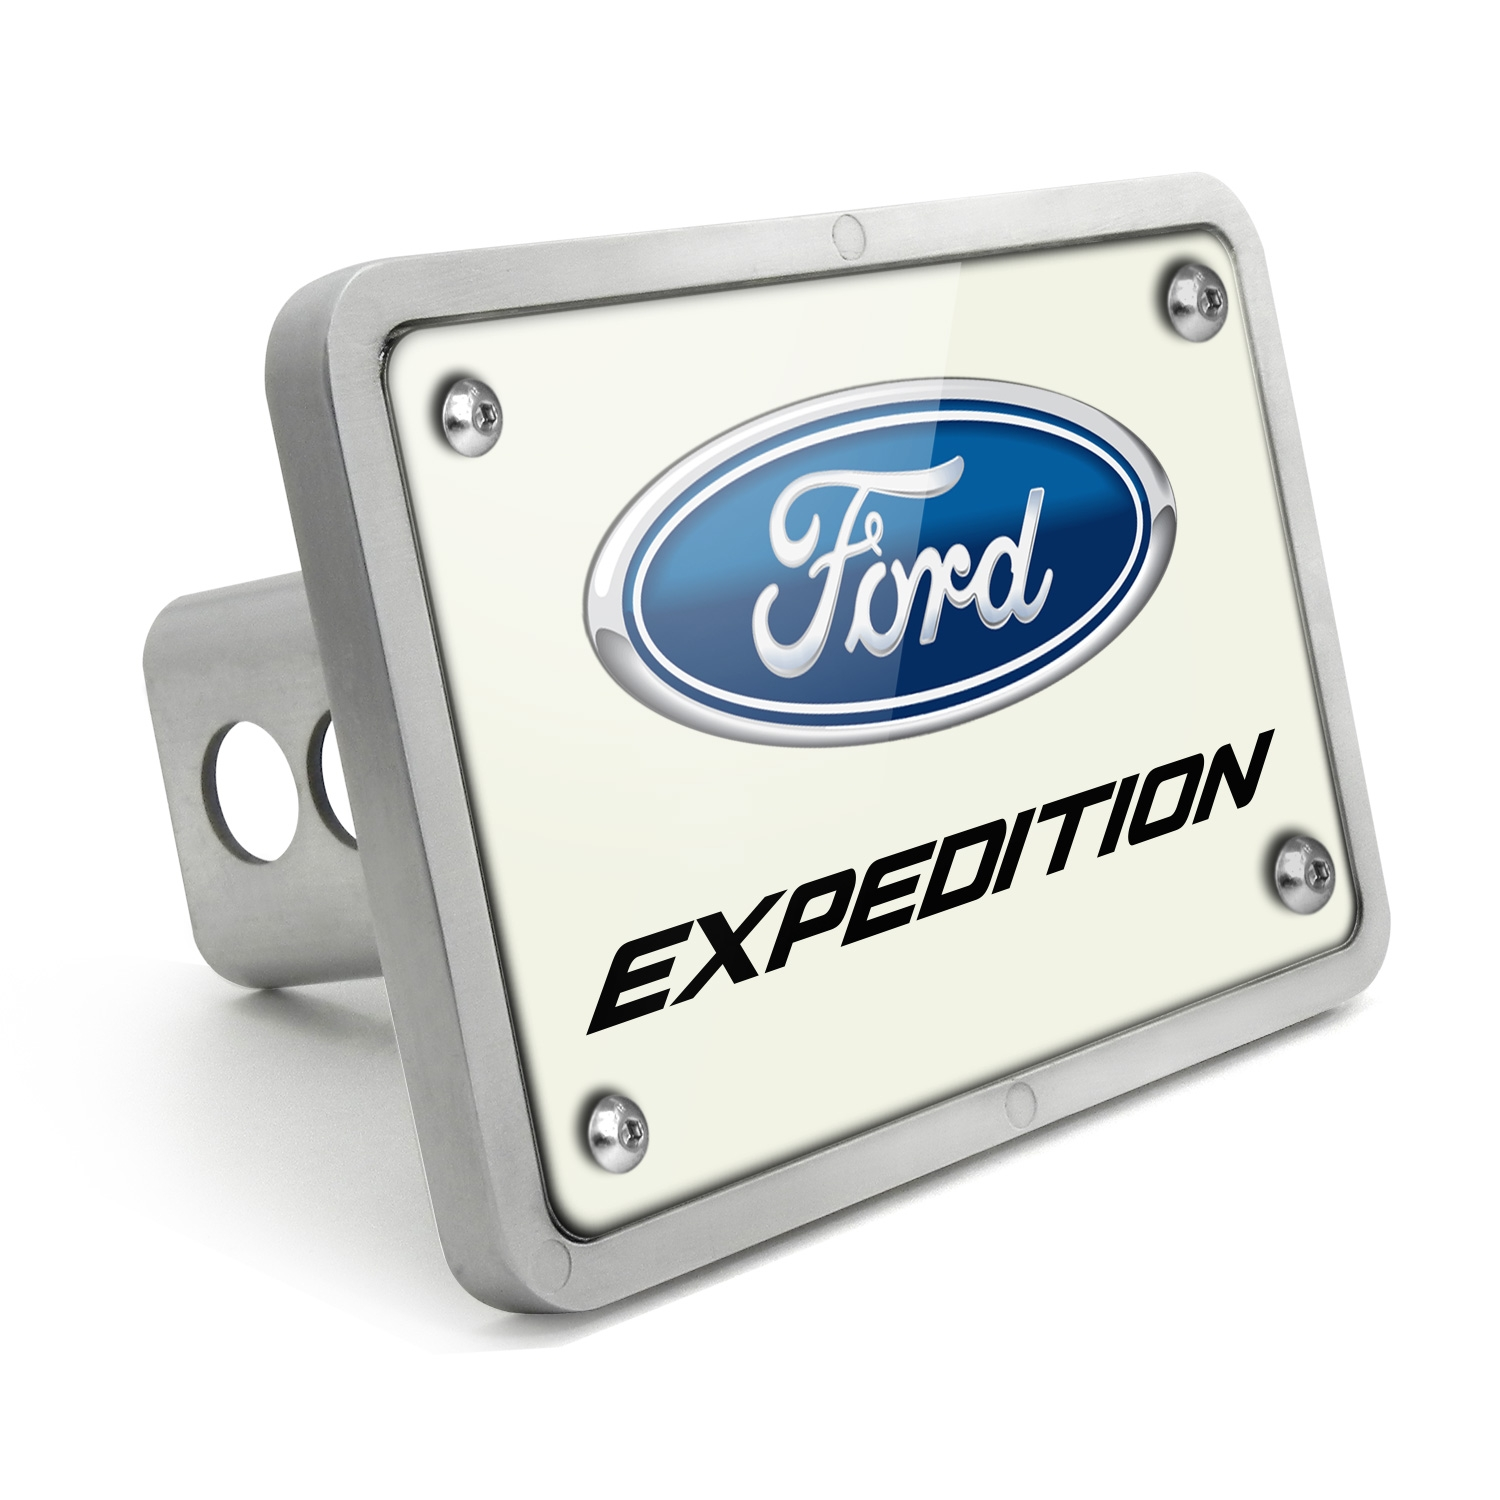 Ford Expedition UV Graphic White Plate Billet Aluminum 2 inch Tow Hitch Cover